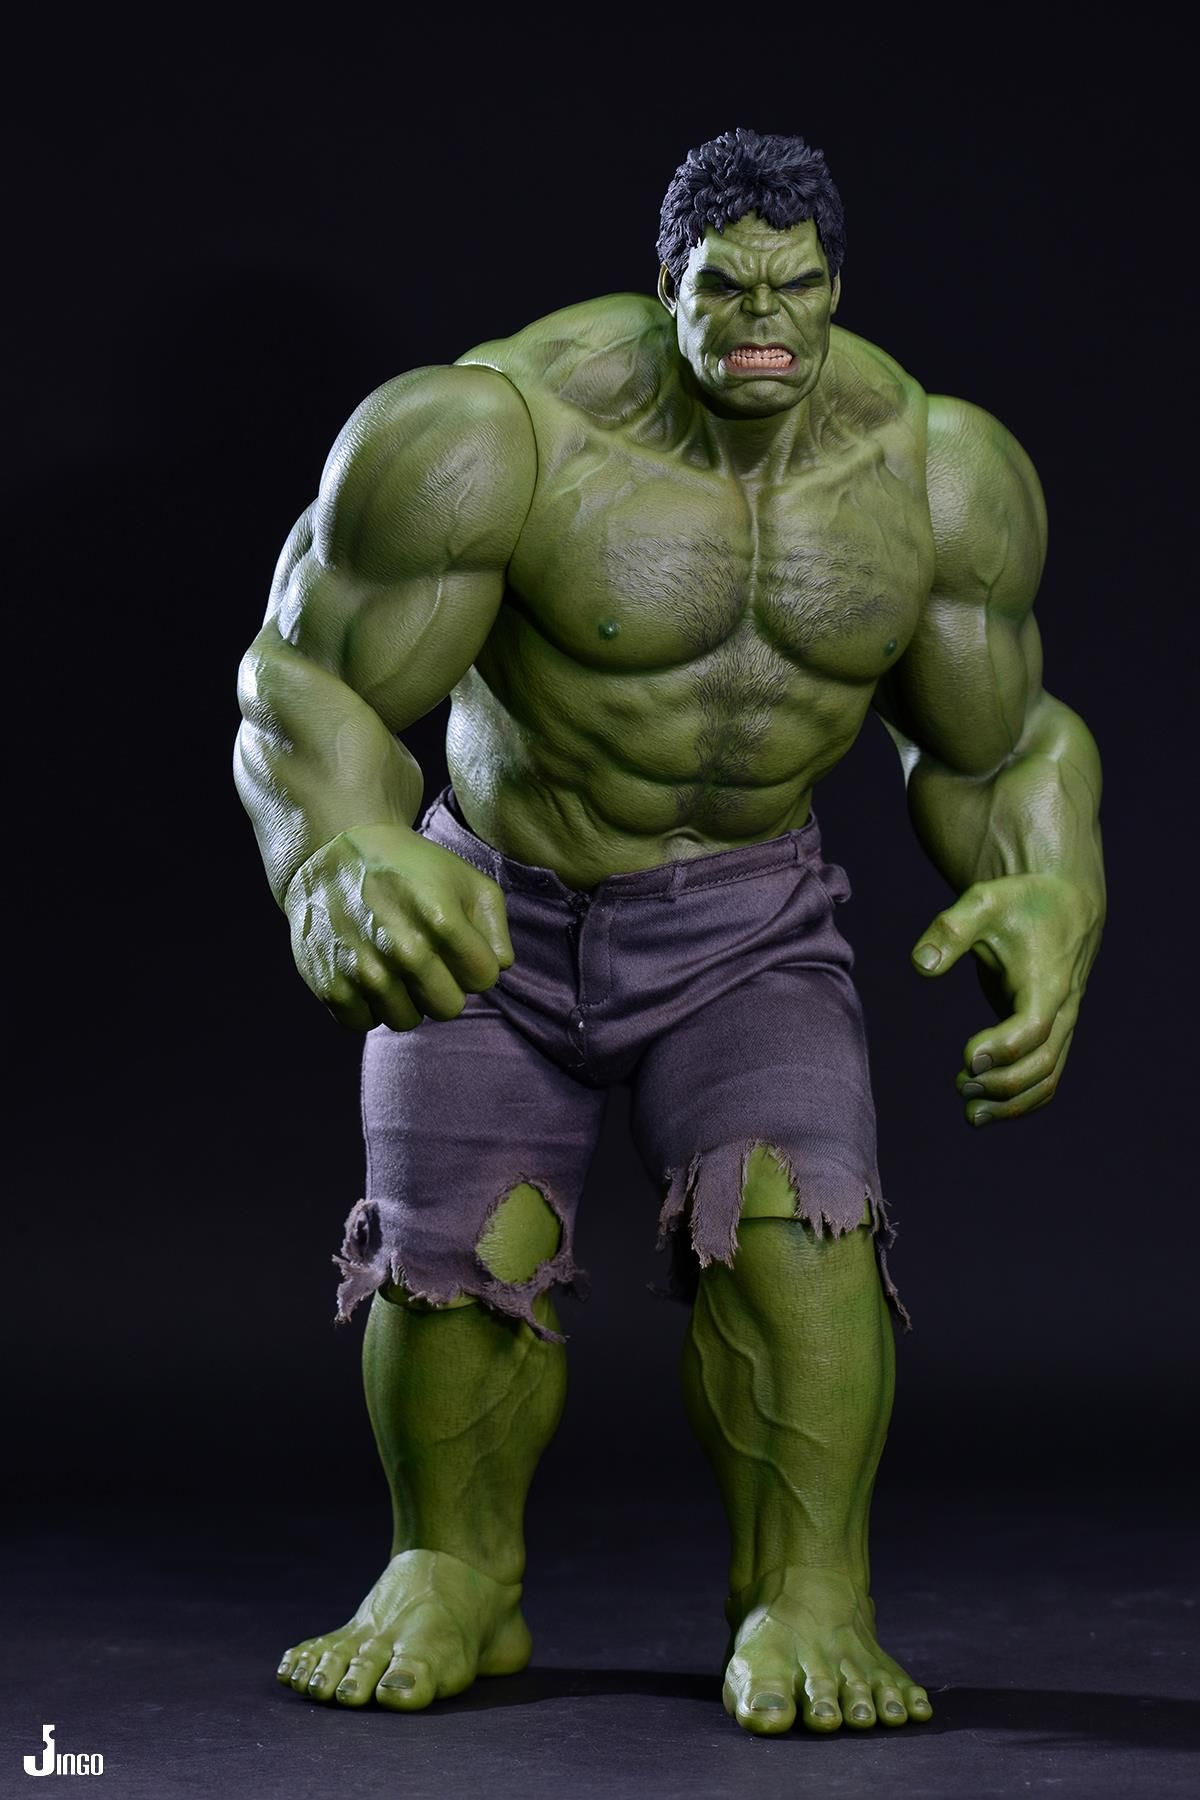 Avengers Hulk Vs Incredible Hulk Comparison